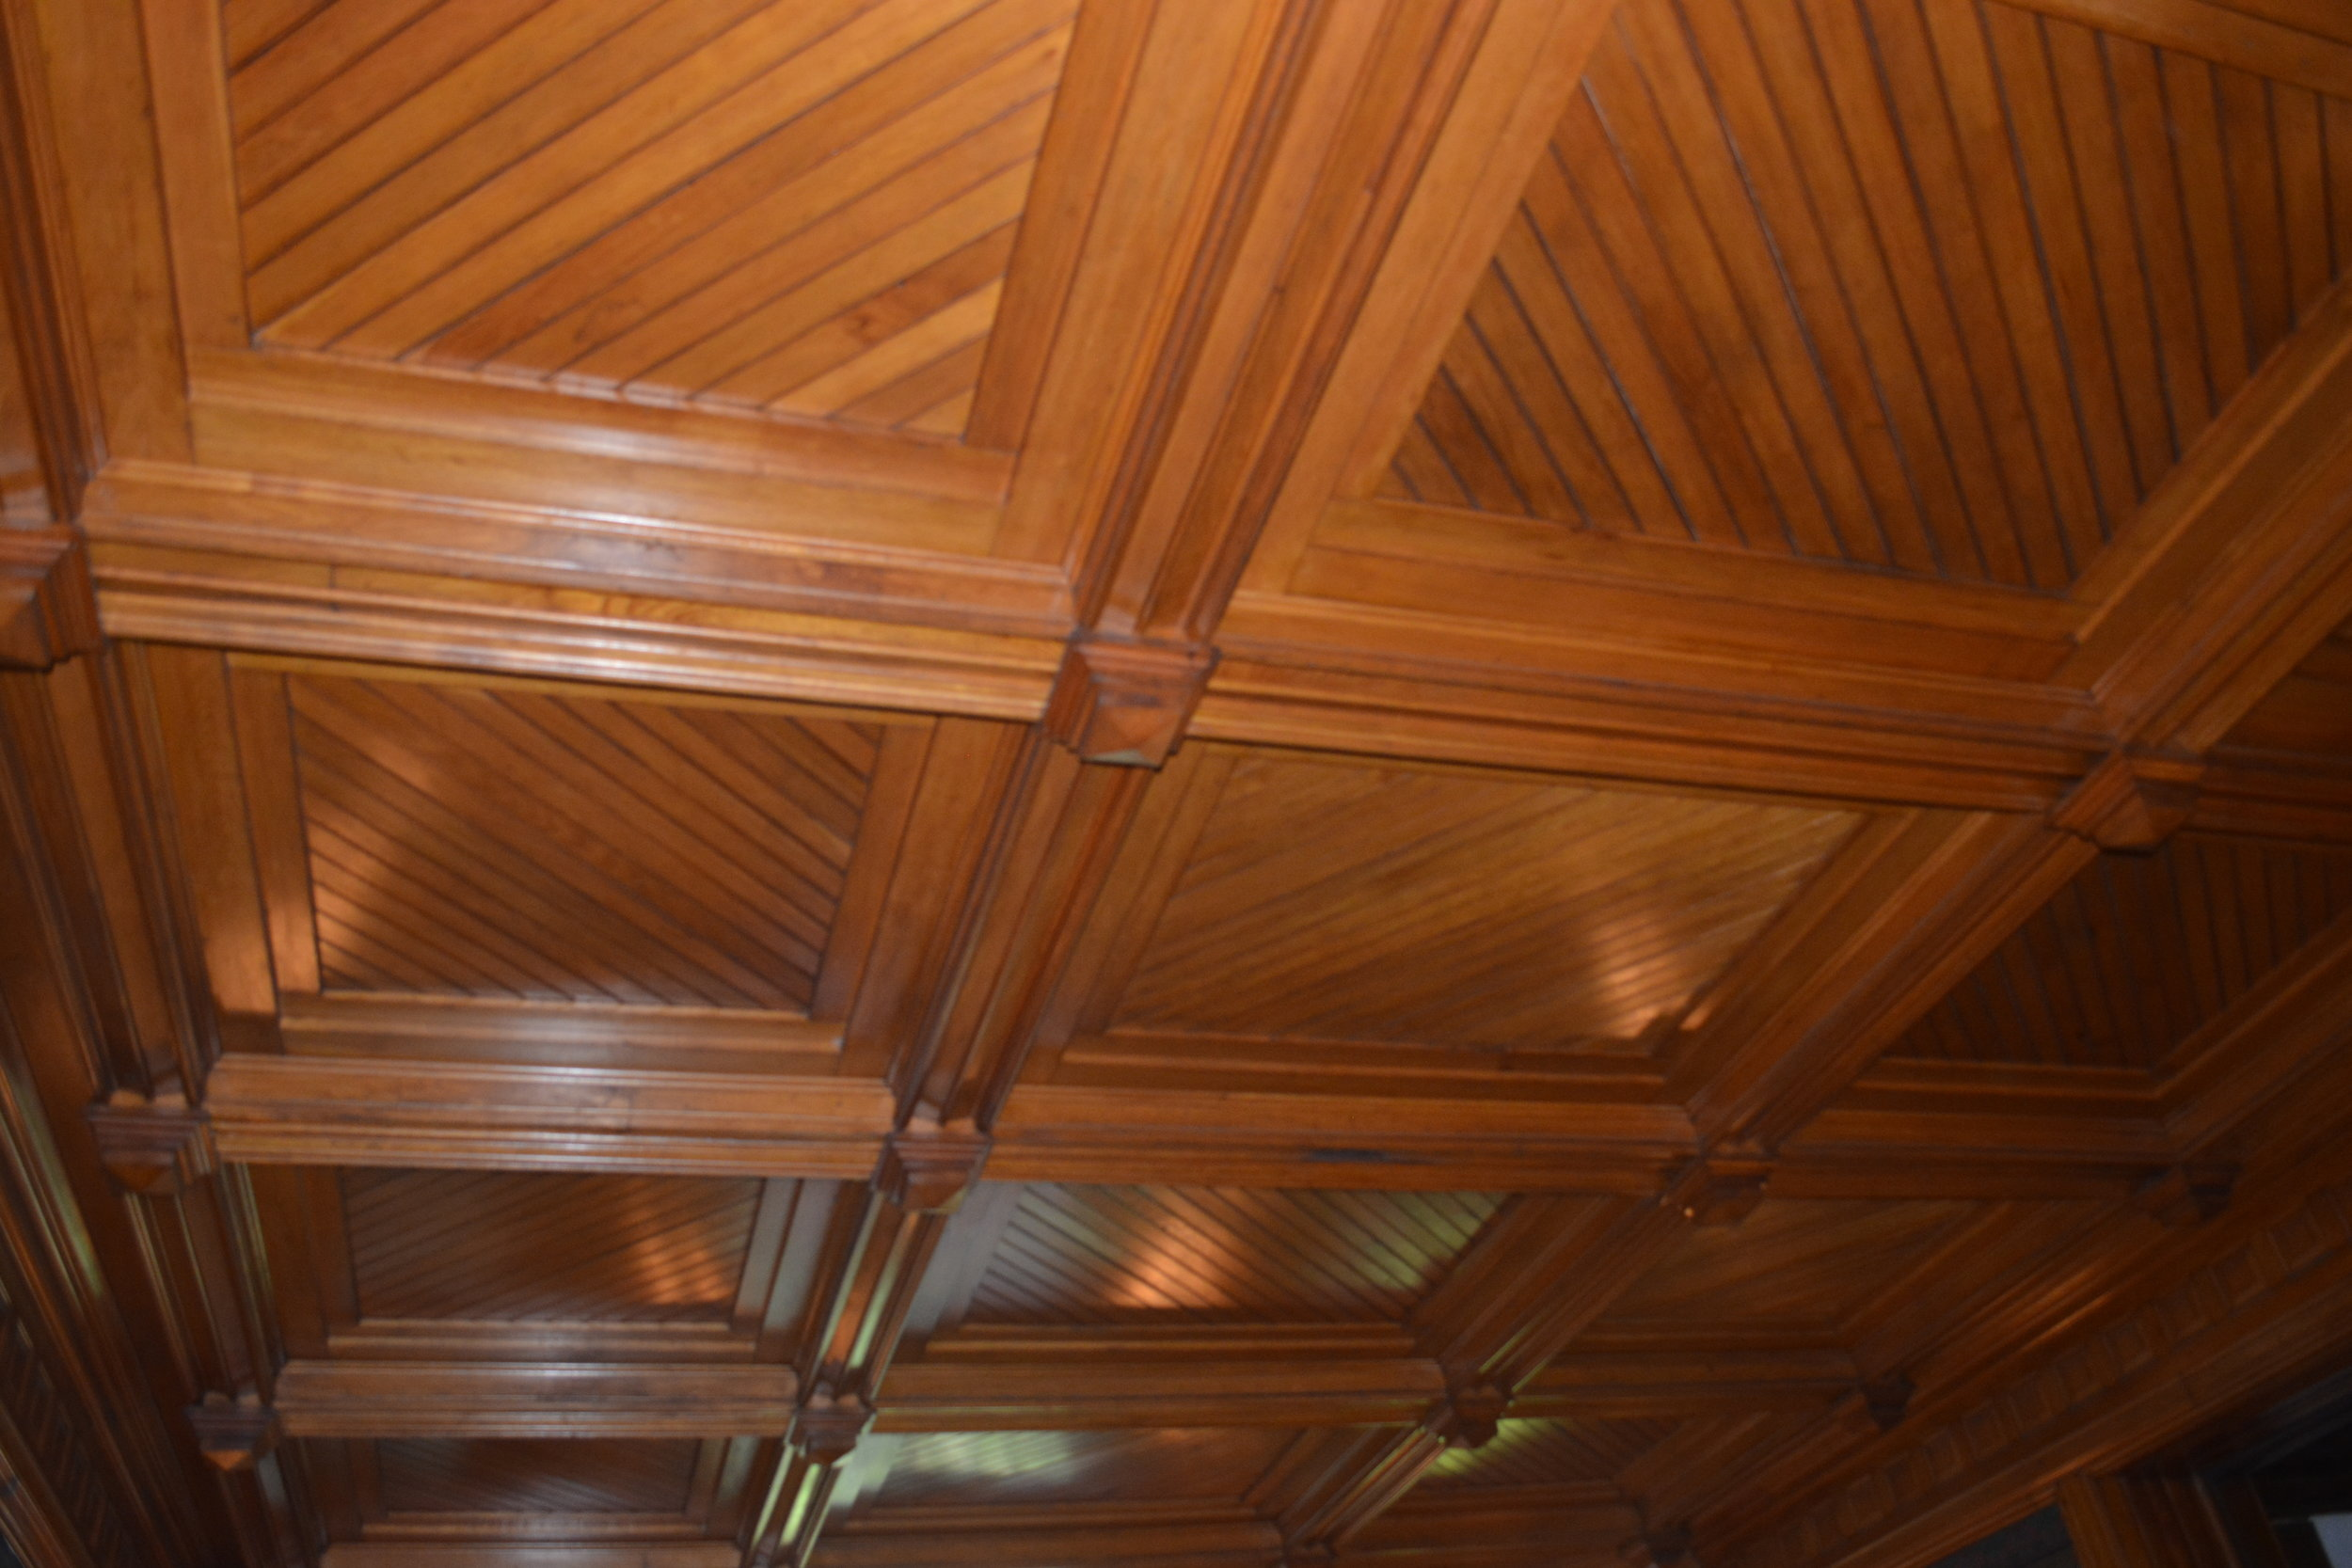 The wood-paneled dining room ceiling